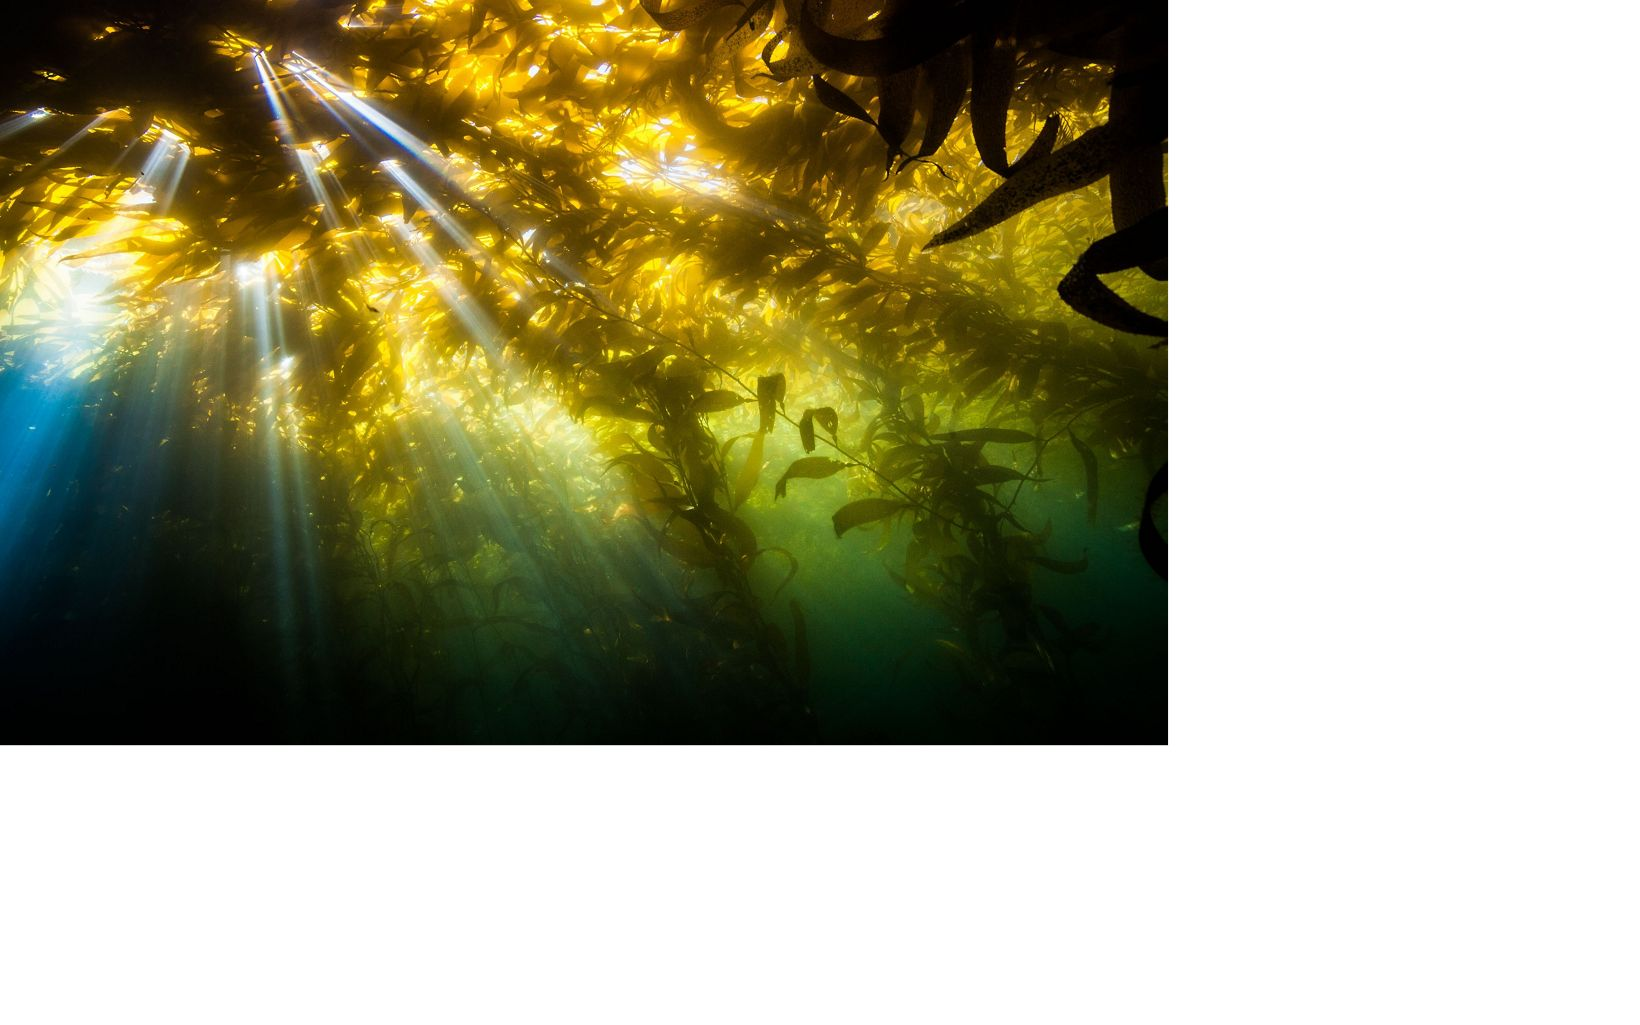 Sunshine coming through a kelp forest off the coast of California